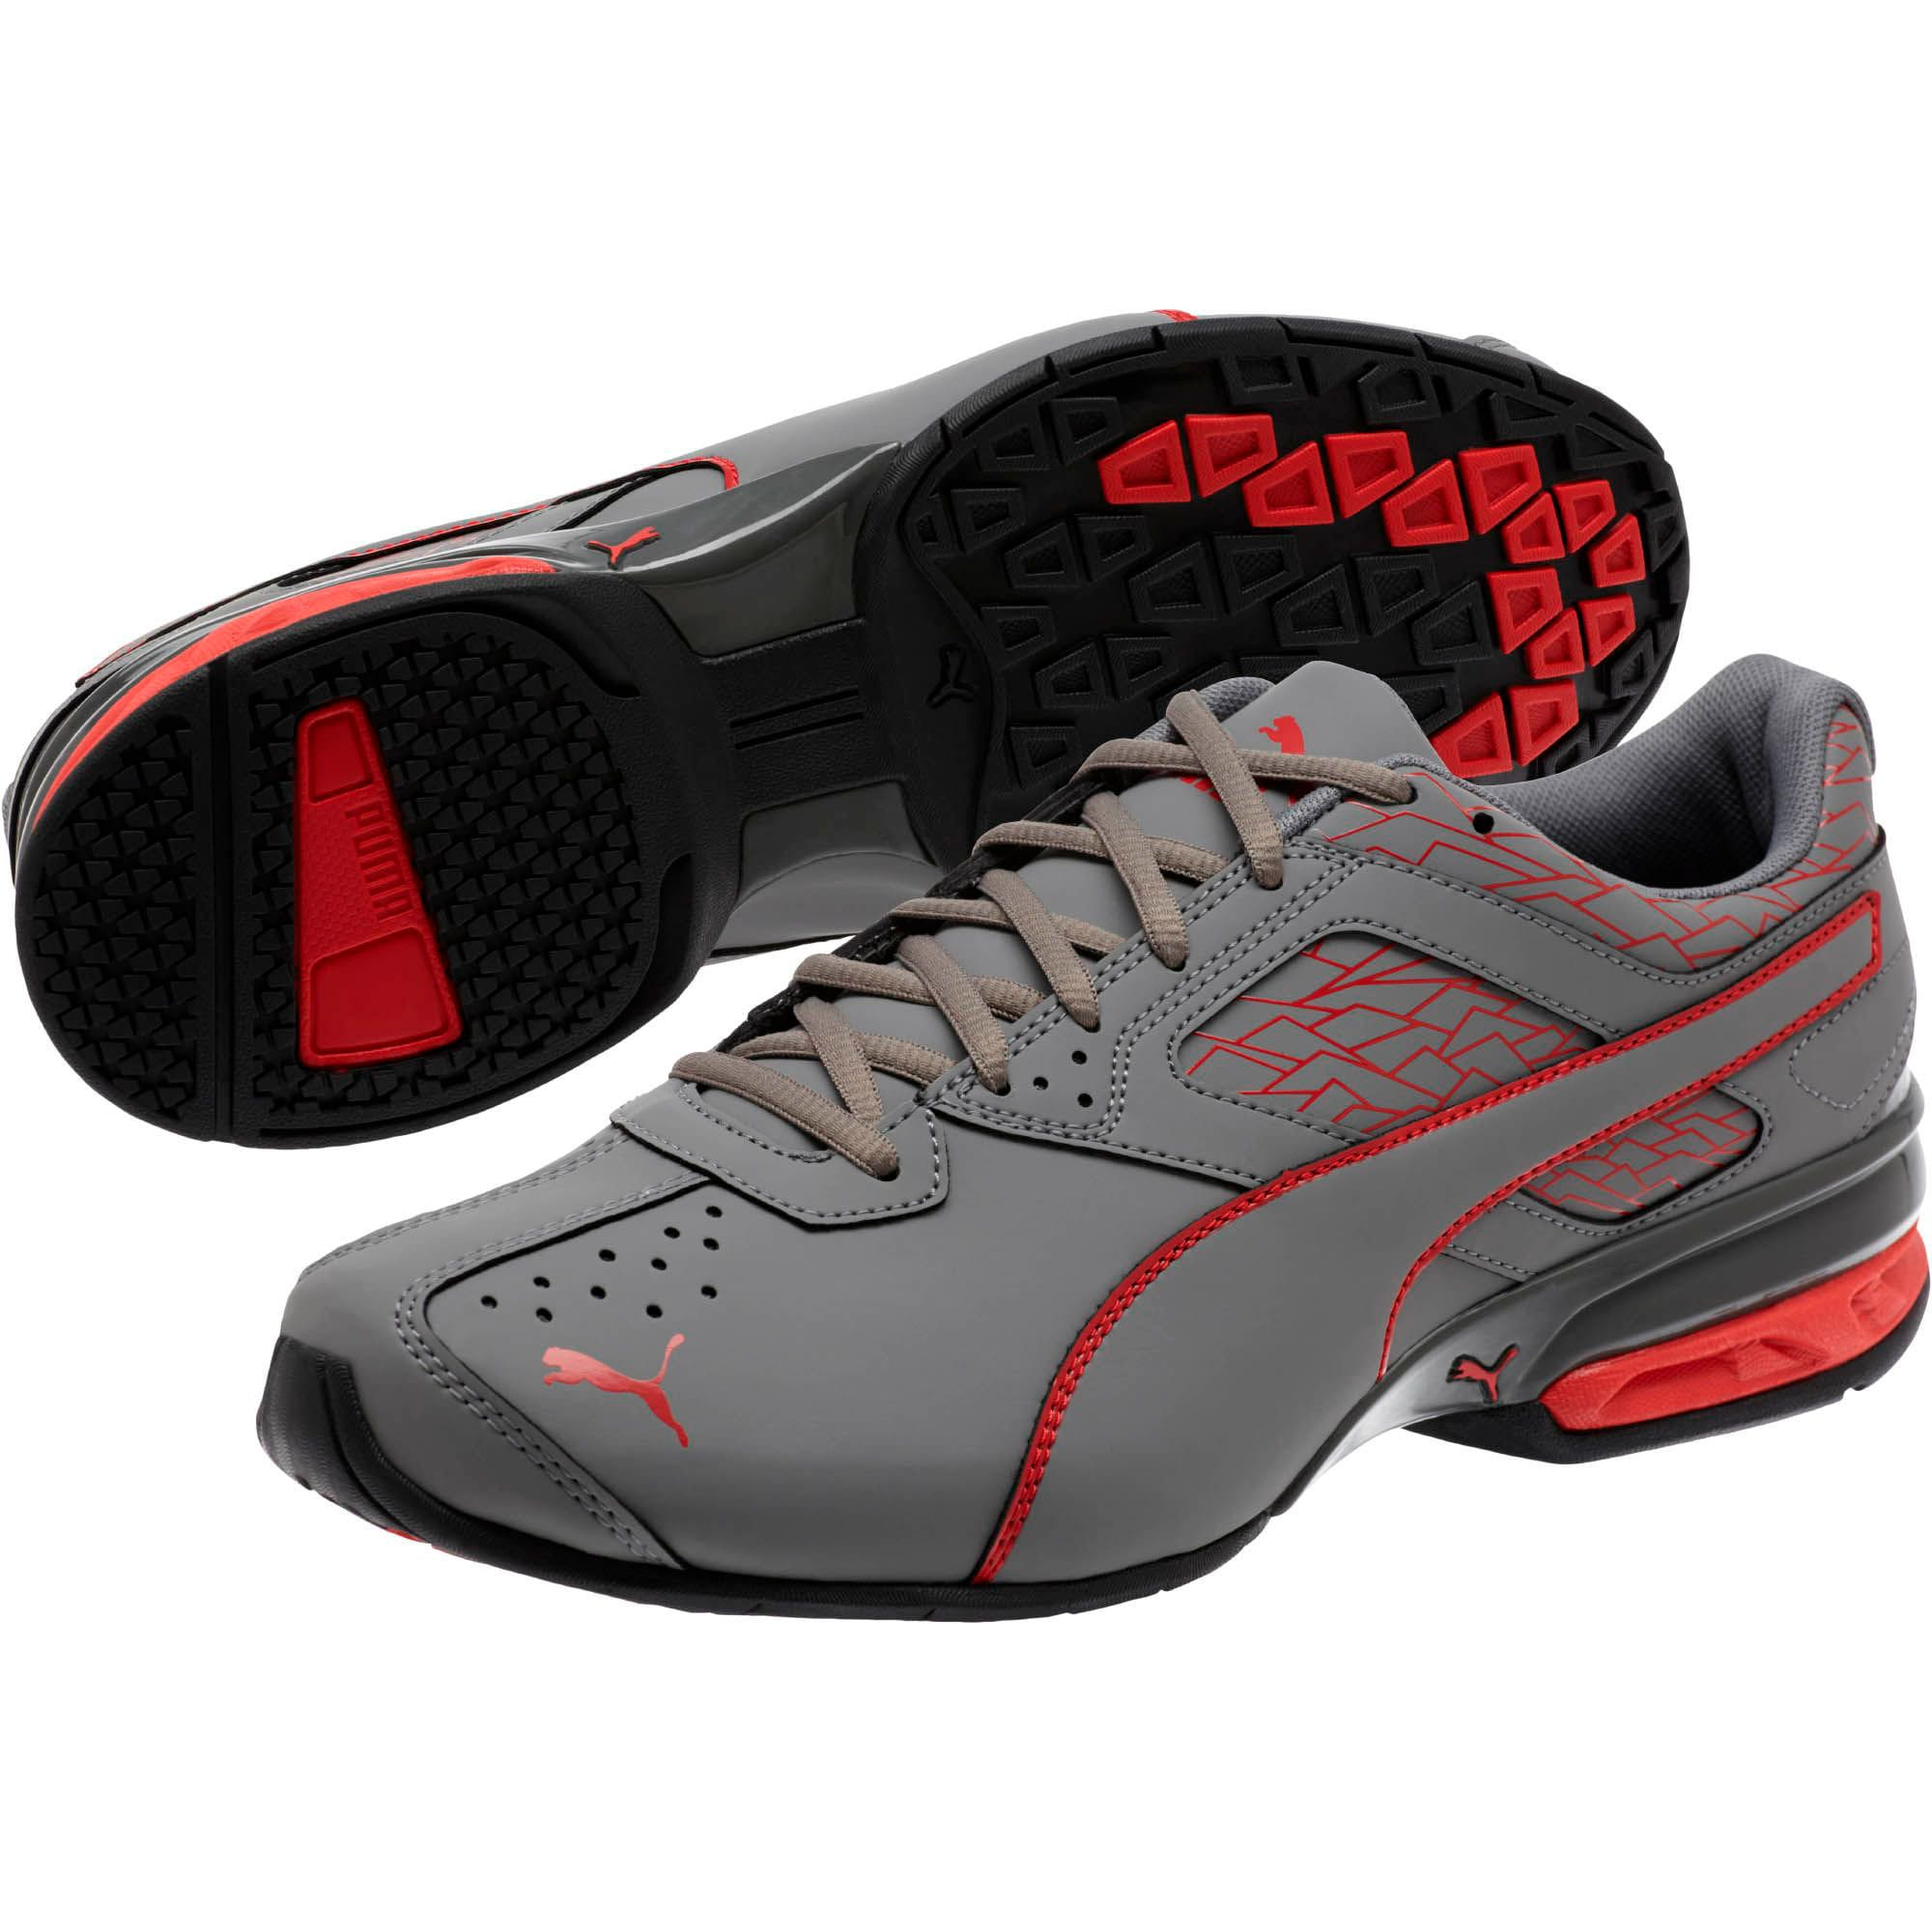 Thumbnail 2 of Tazon 6 Fracture FM Men's Sneakers, QUIET SHADE-High Risk Red, medium